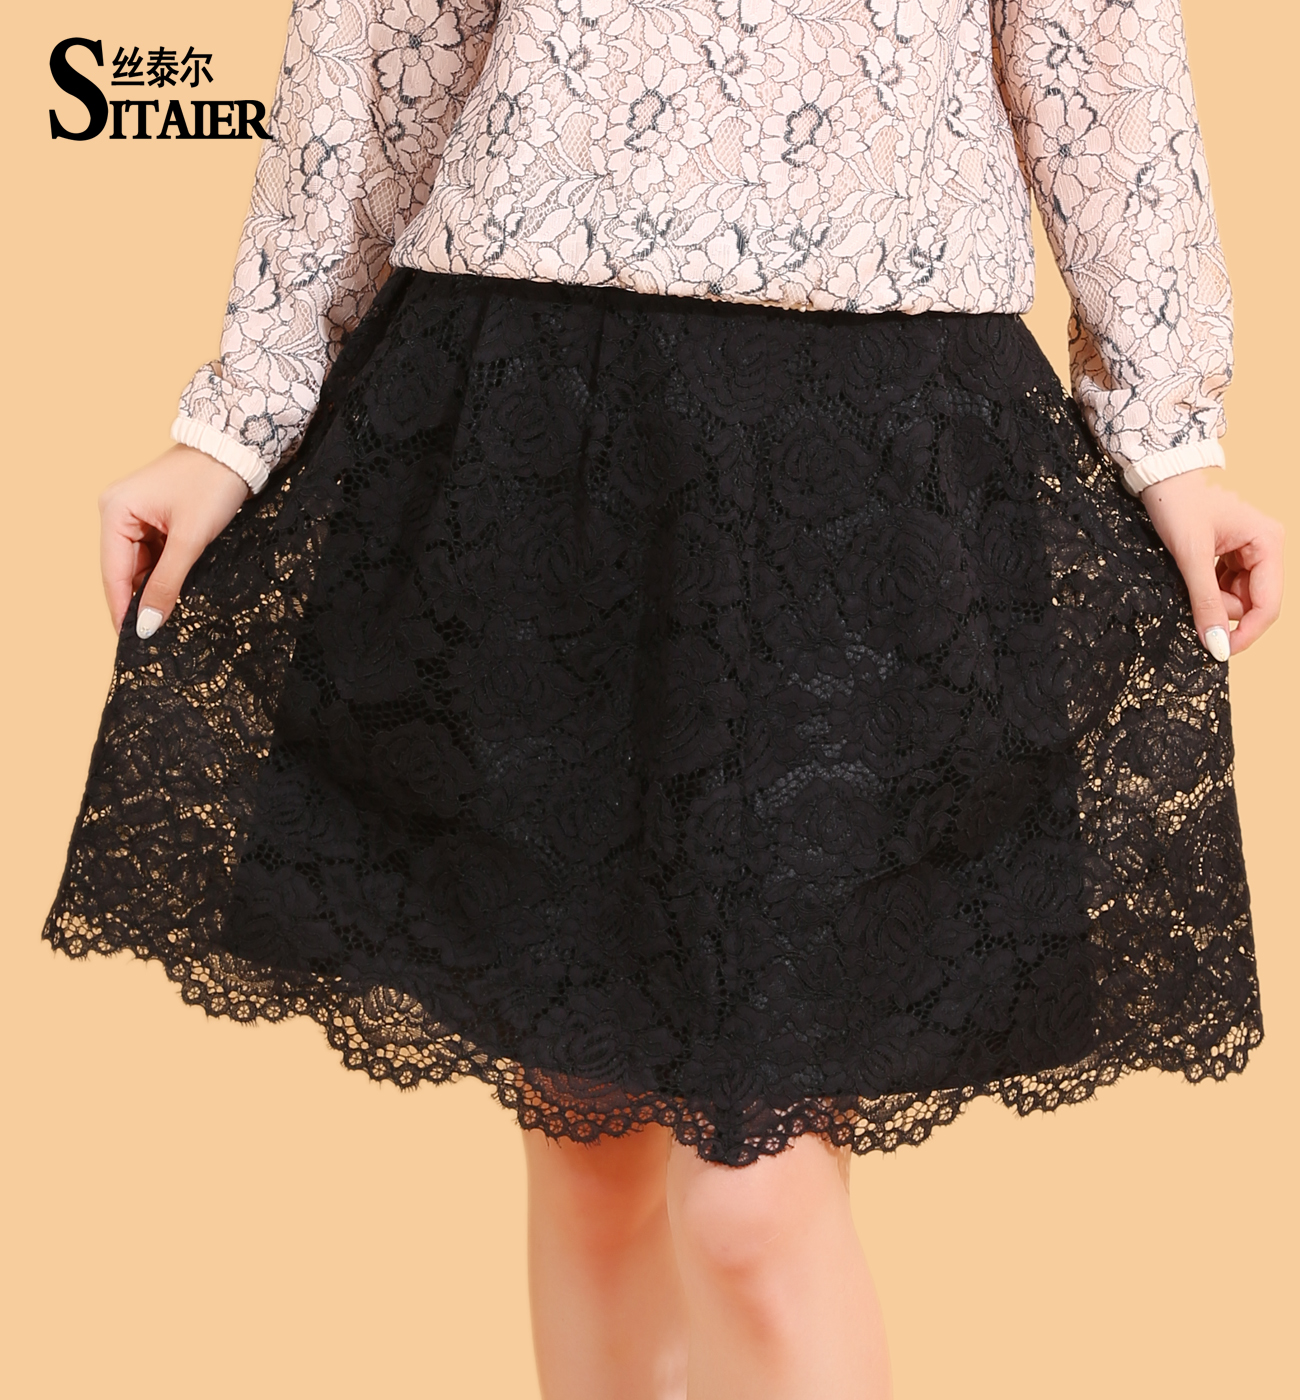 Brand new mini skirt with best quality and low price